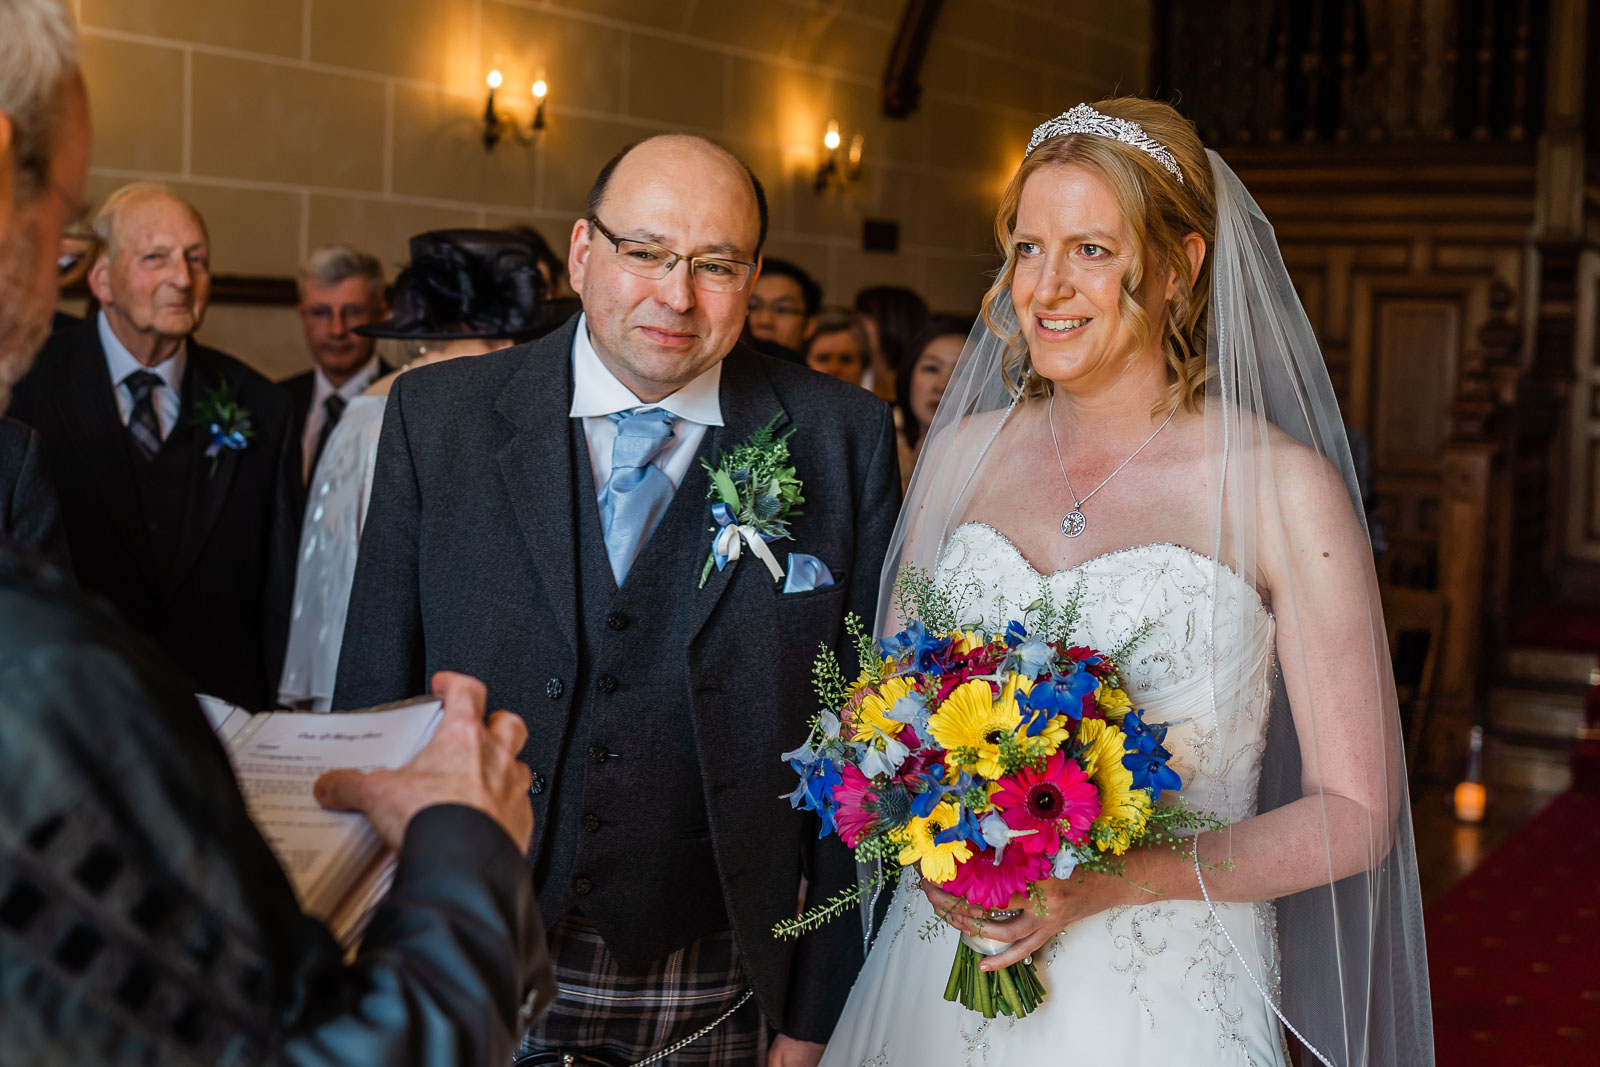 dalhousie_castle_wedding_edinburgh_dearlyphotography (104 of 371).jpg